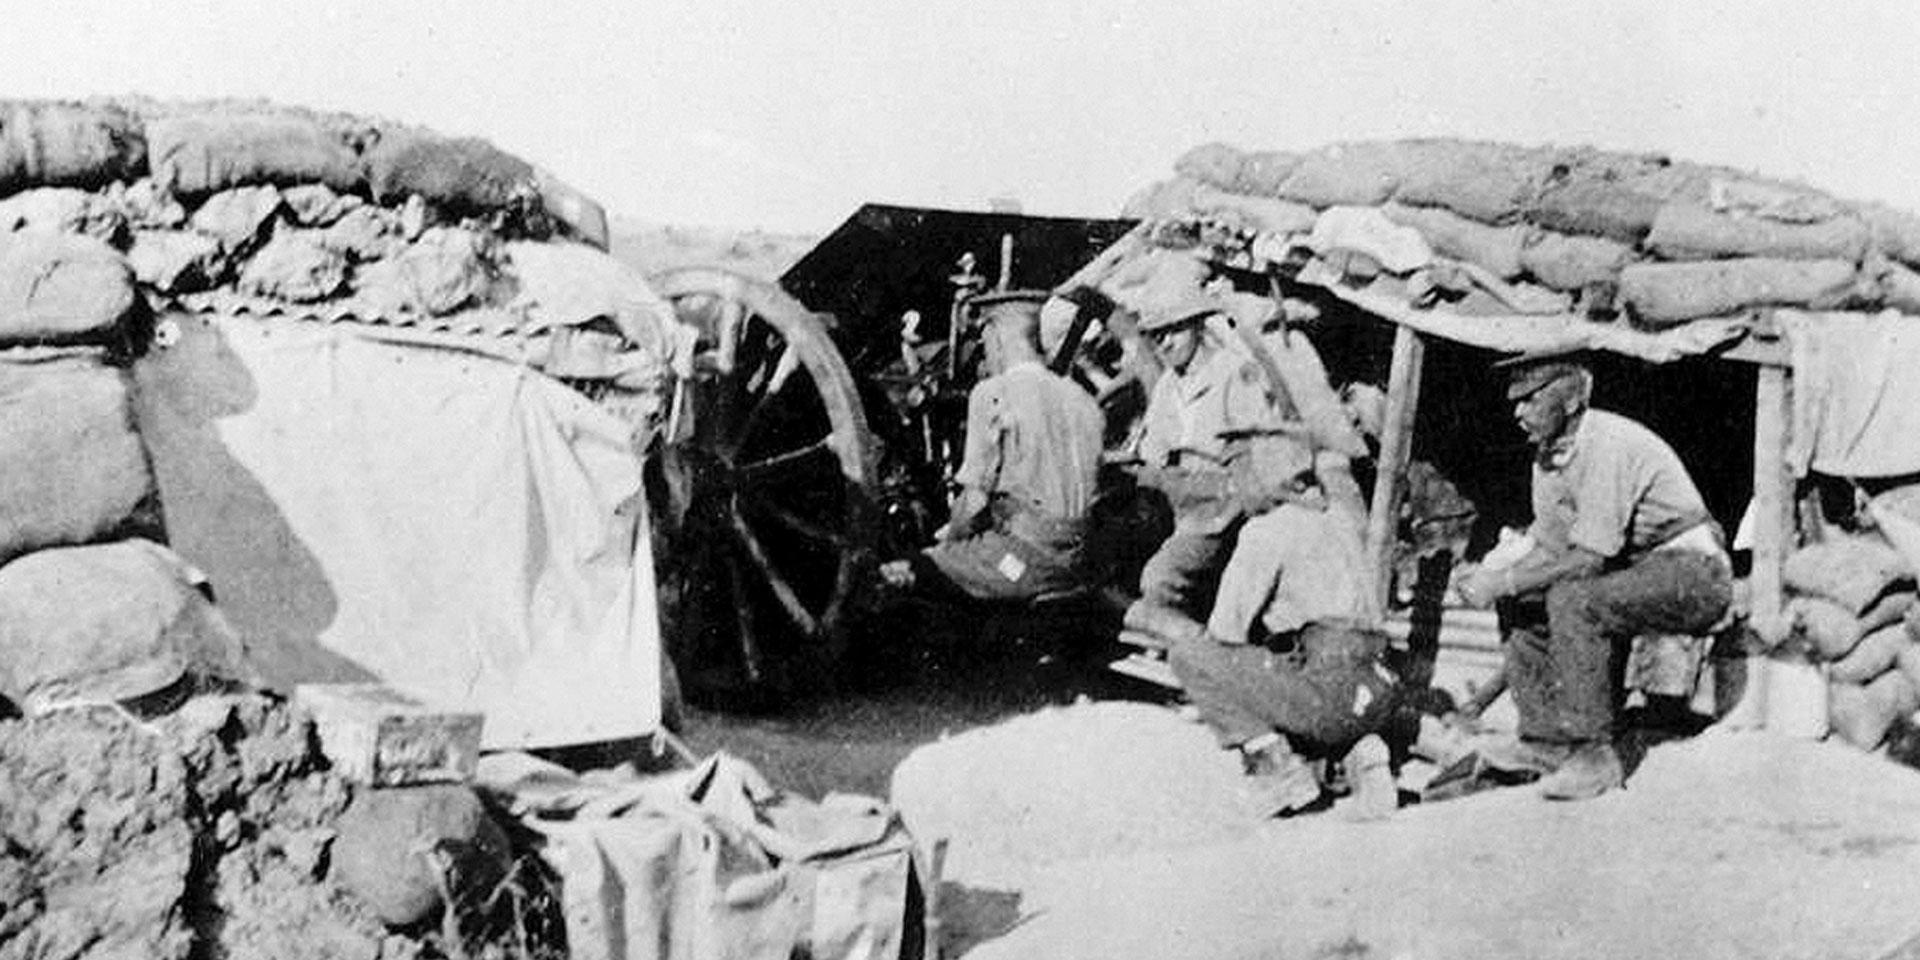 92nd Battery of 117th Brigade, Royal Field Artillery, at Cape Helles, 1915